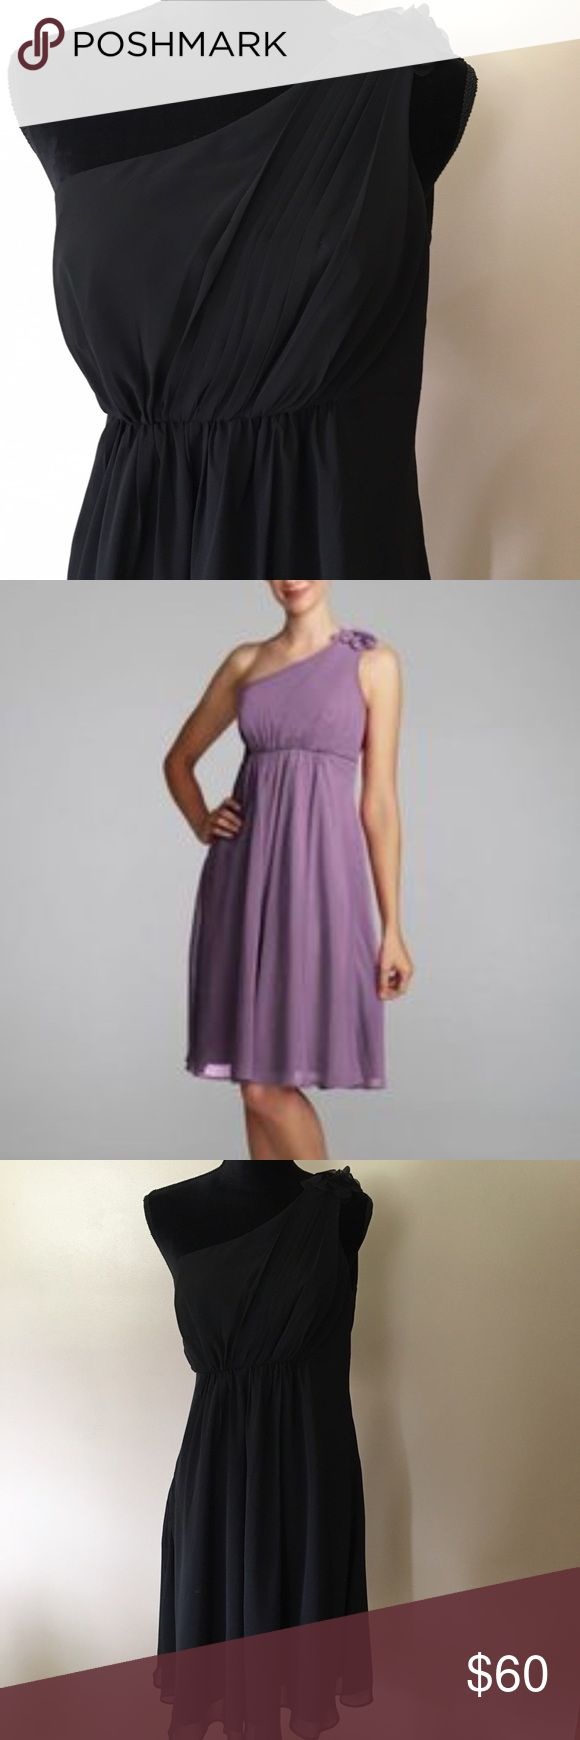 David's Bridal Size 12 One Shoulder Chiffon Dress The dress is black the stock photo of the purple dress is just to see a better view of the details.  Size 12, new with tags.  Chiffon fabric.  Very flattering.  Never altered. David's Bridal Dresses One Shoulder